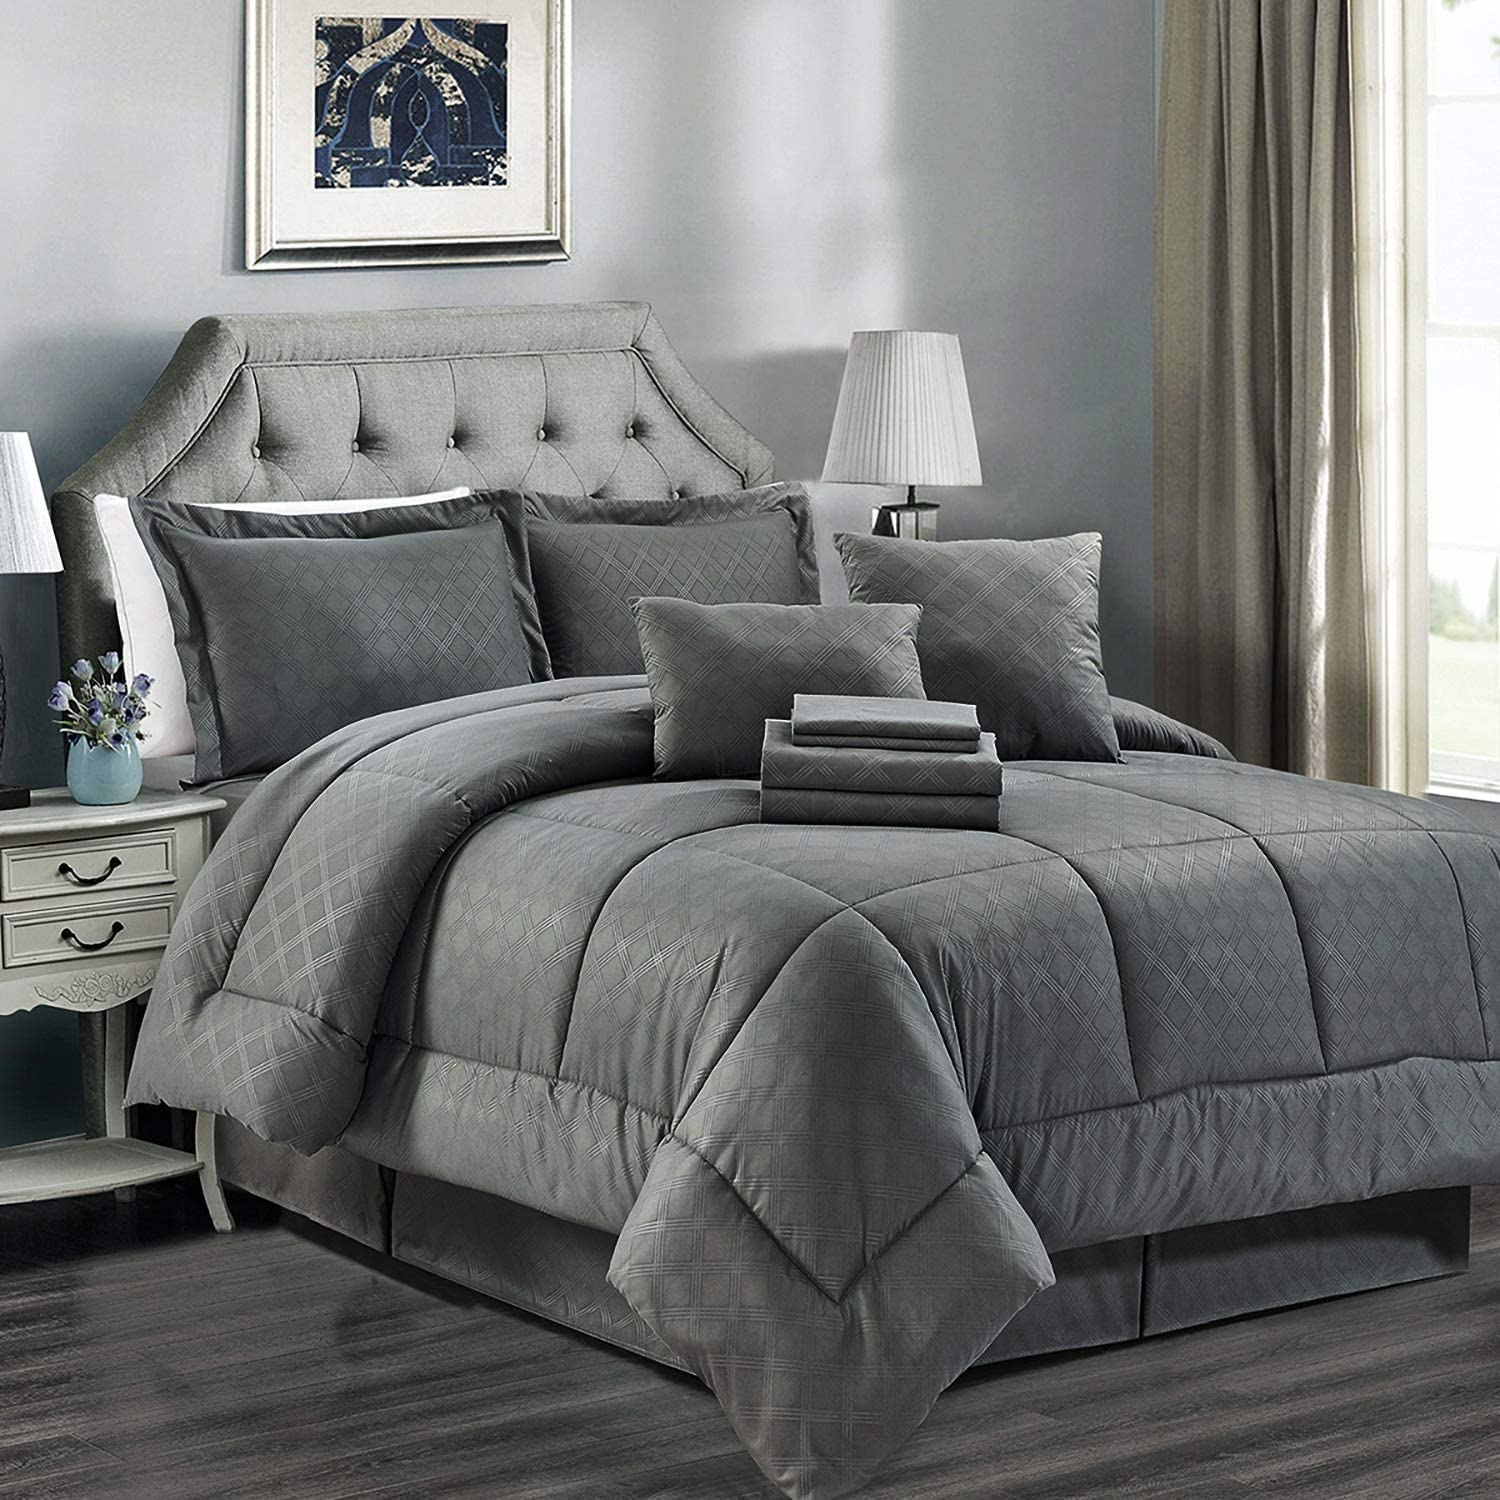 JML Comforter Set, 8 Piece Microfiber Bedding Comforter Sets with Shams - Luxury Solid Color Quilted Embroidered Pattern, Perfect for Any Bed Room or Guest Room (Grey, Twin)